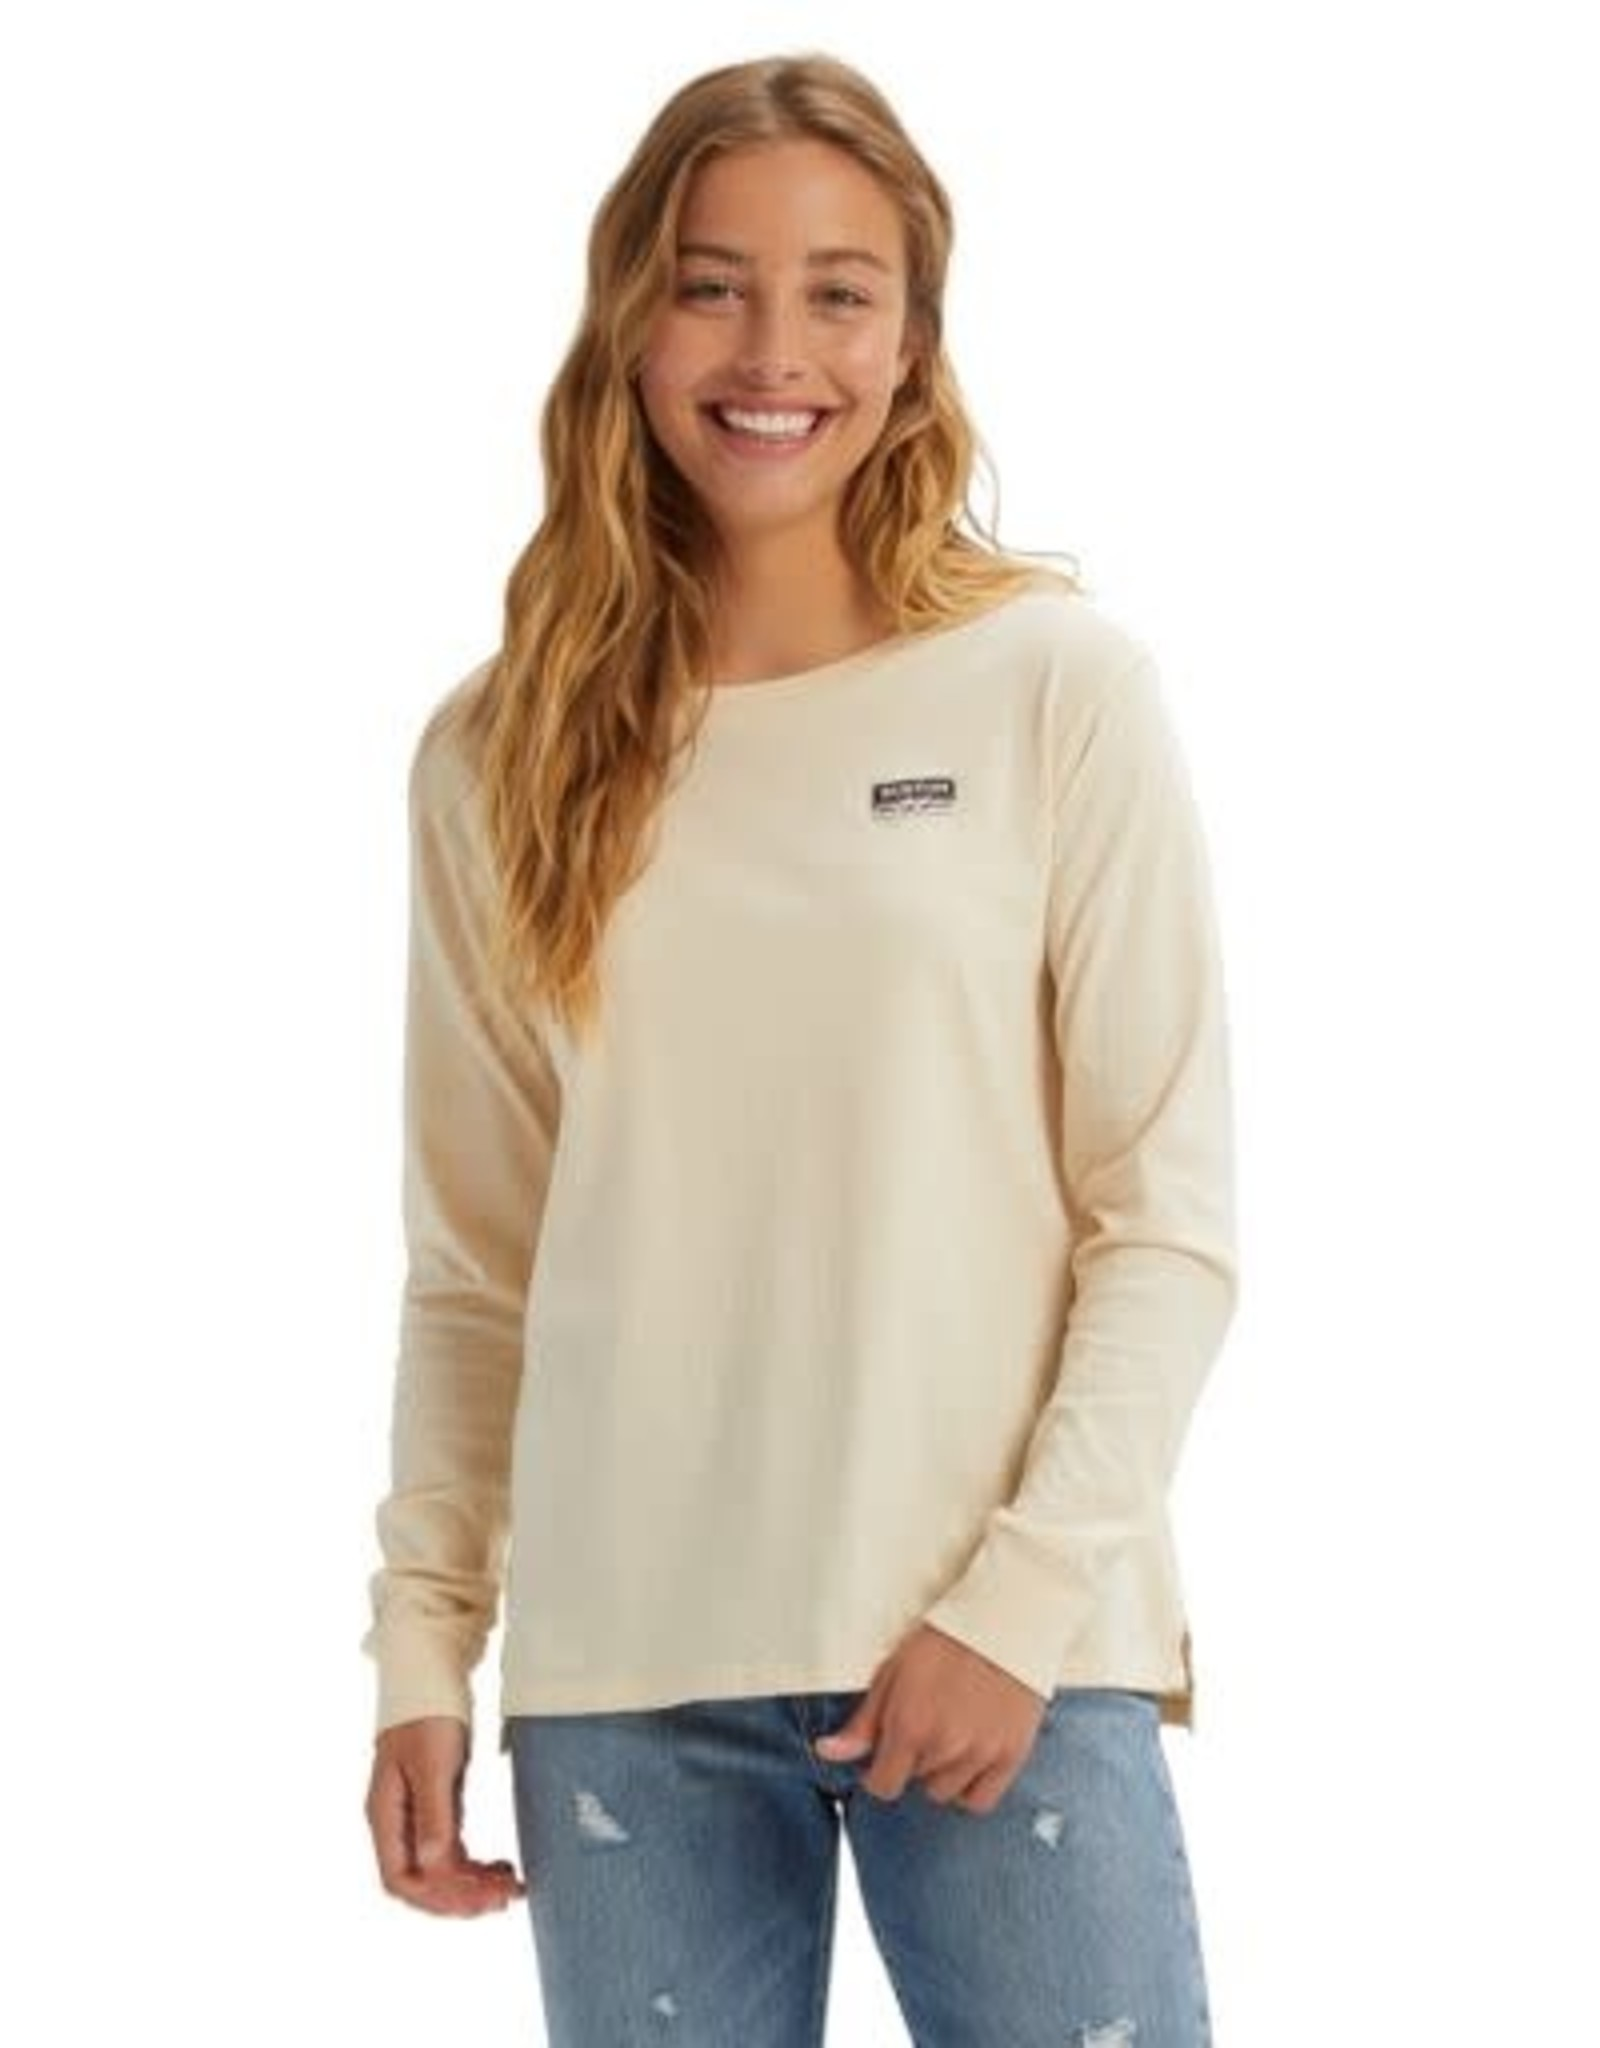 Burton Women's Classic Long Sleeve T-Shirt